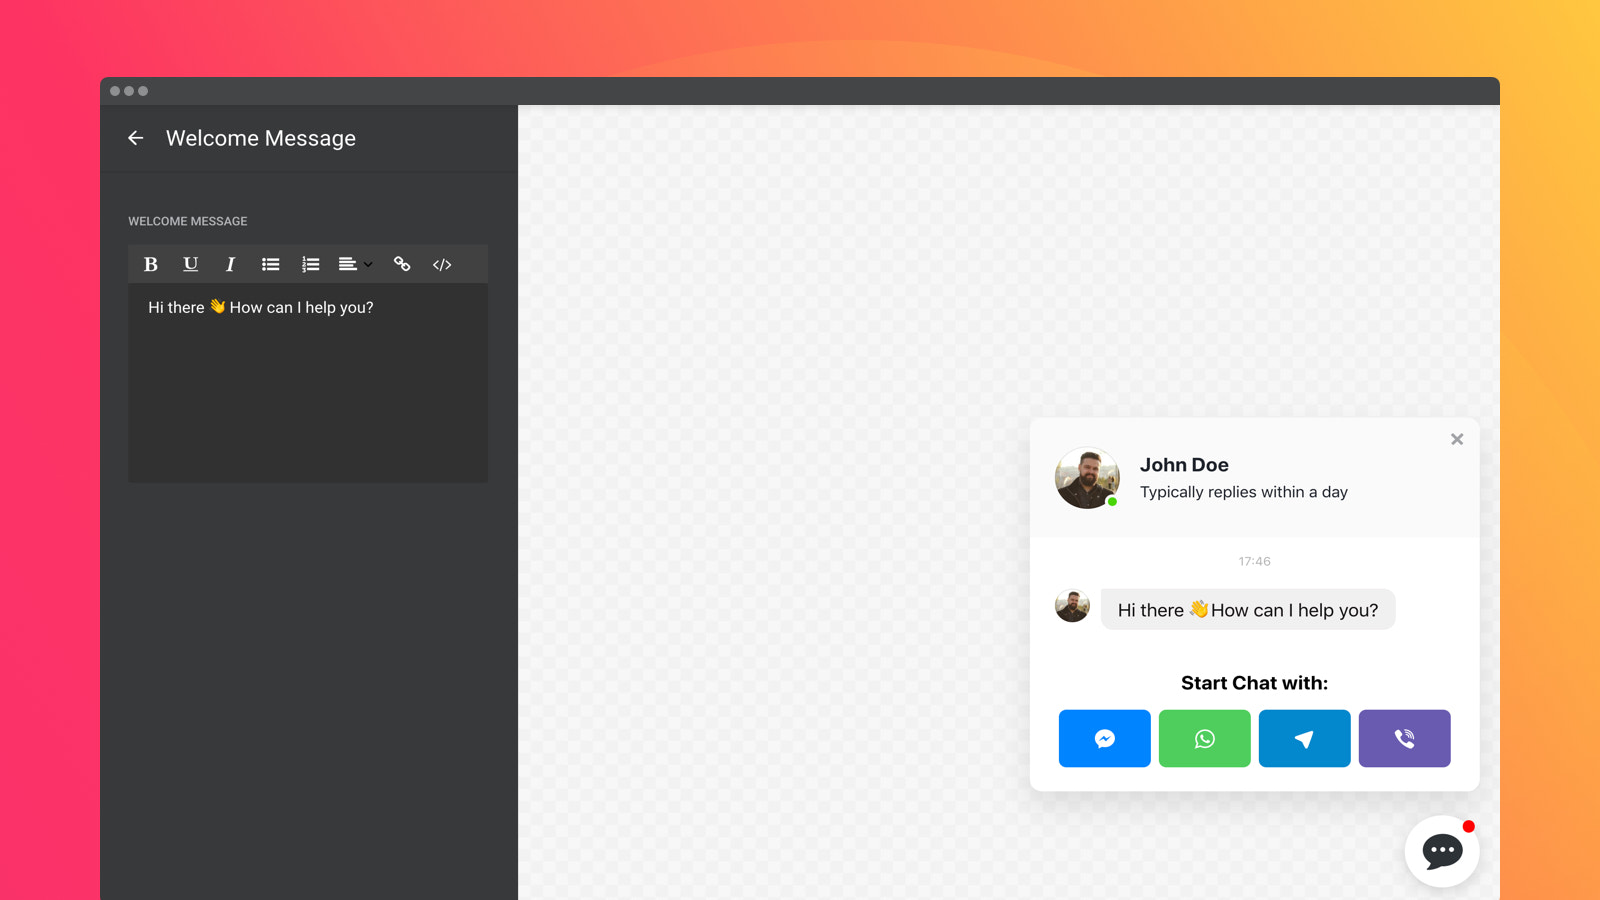 Draw users in chats with the help of engaging welcome message